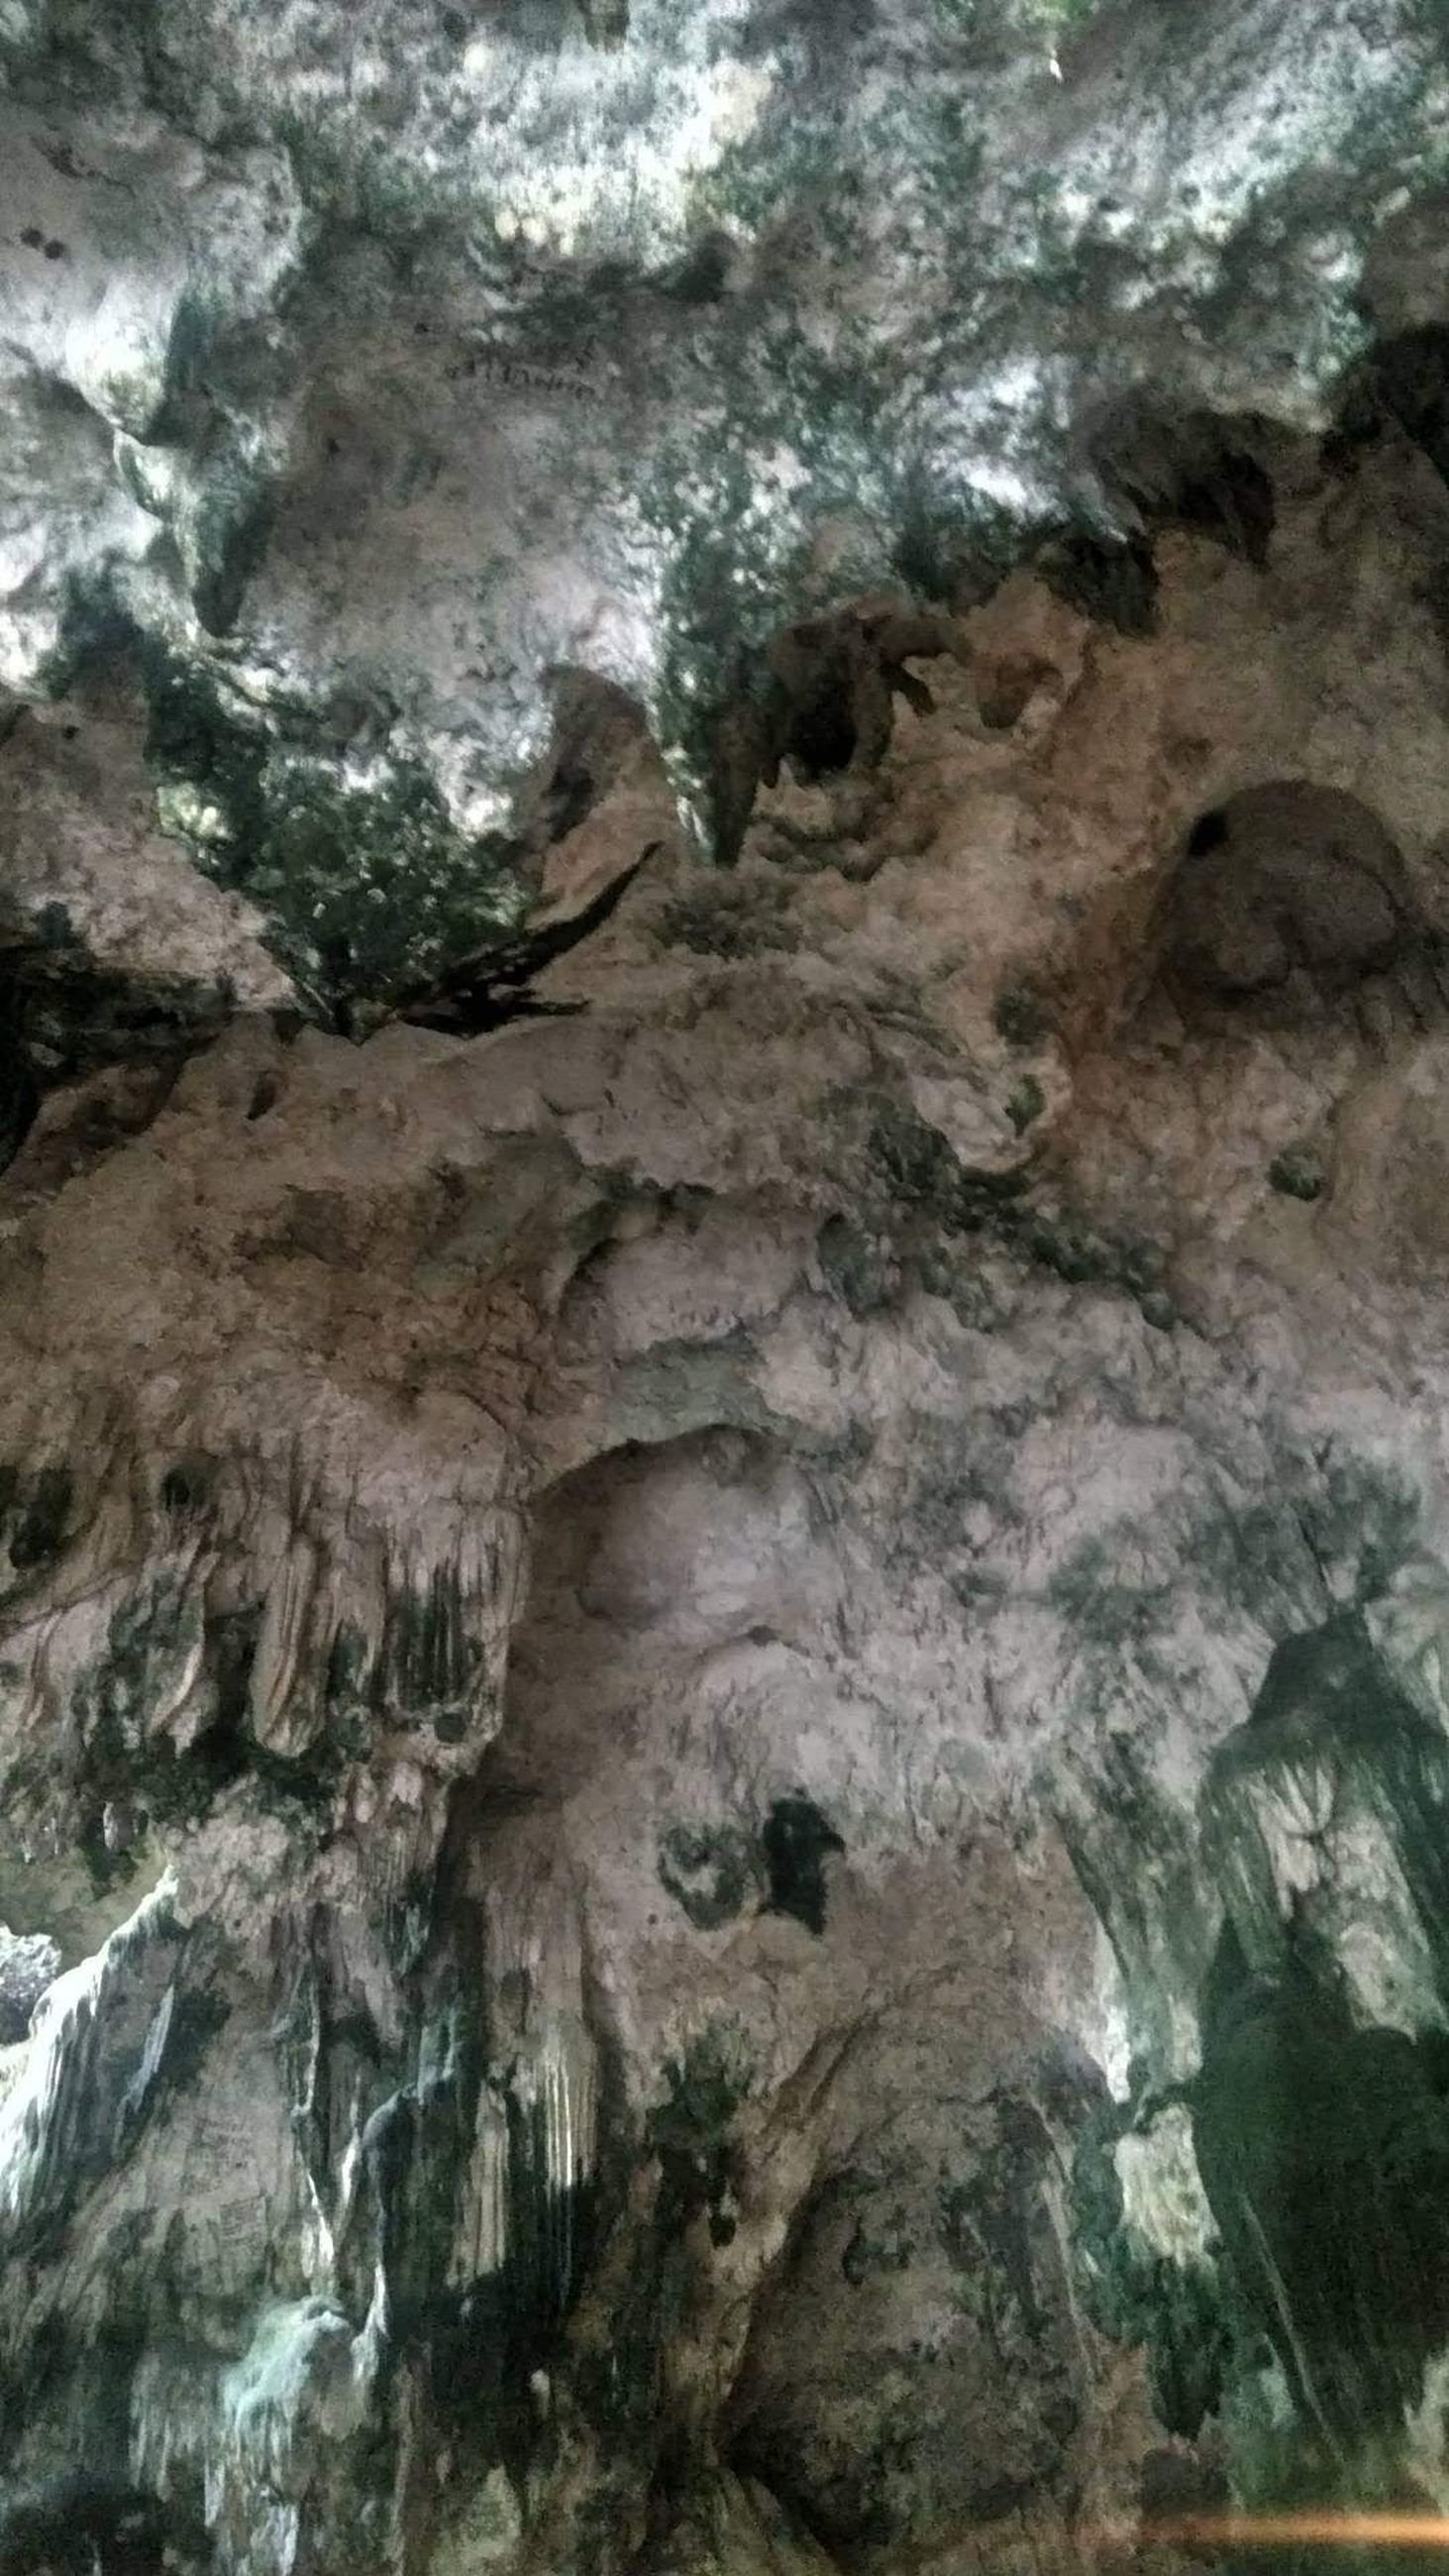 rock, geology, no people, beauty in nature, rock formation, nature, physical geography, cave, day, textured, water, rough, outdoors, non-urban scene, tranquility, pattern, formation, scenics - nature, low angle view, stalactite, full frame, backgrounds